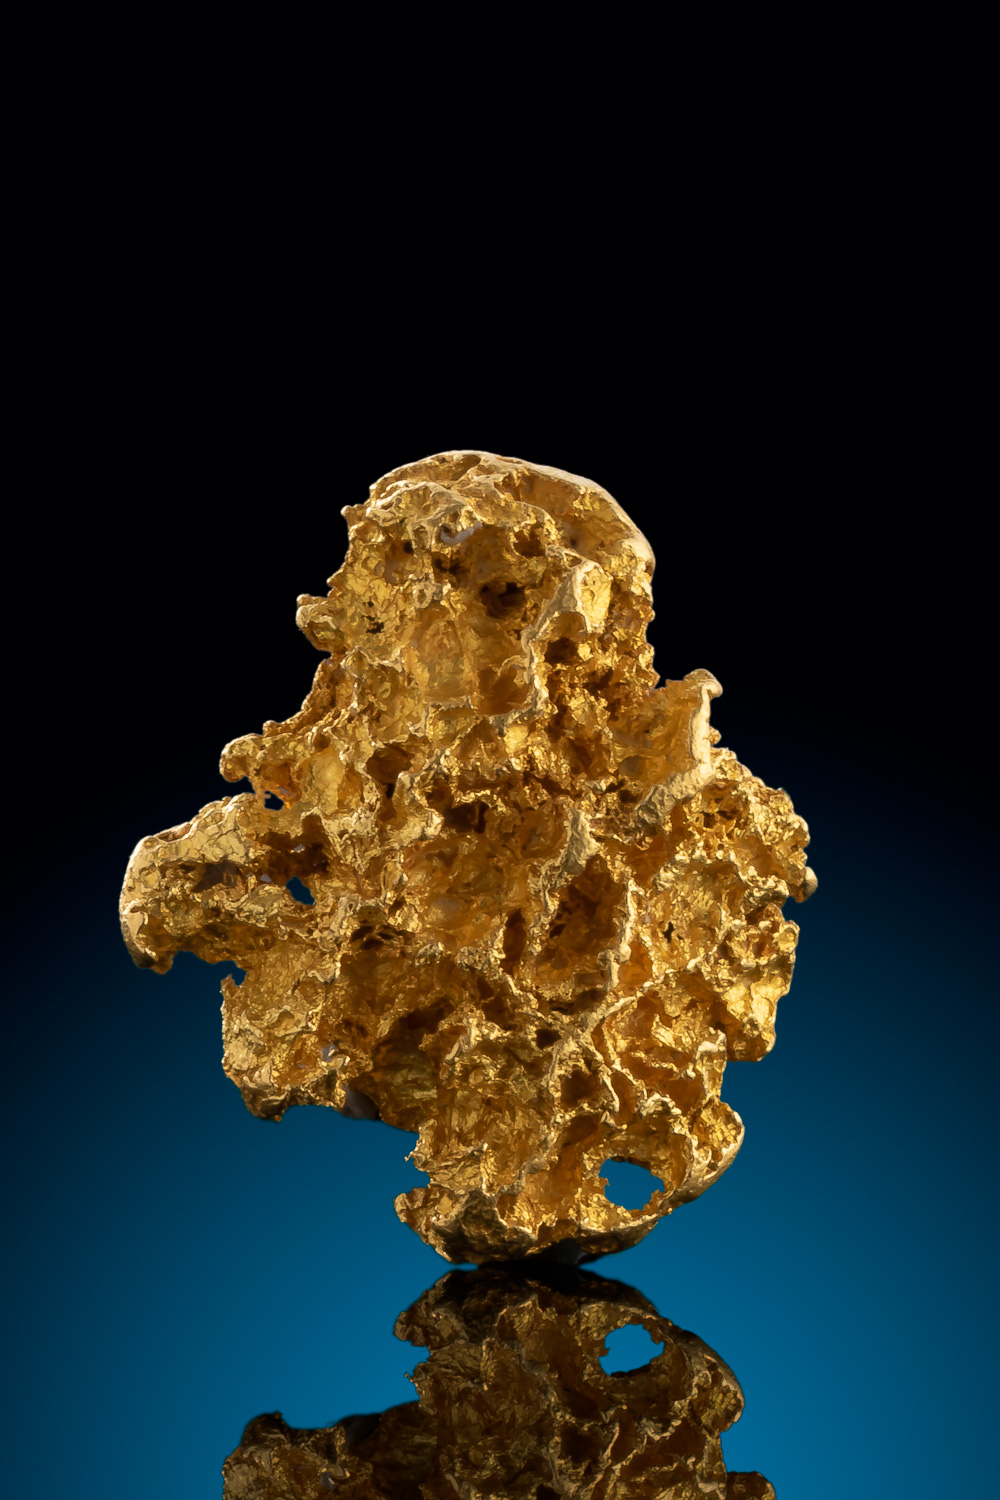 Detailed Alaskan Gold Nugget with Striations on the surface